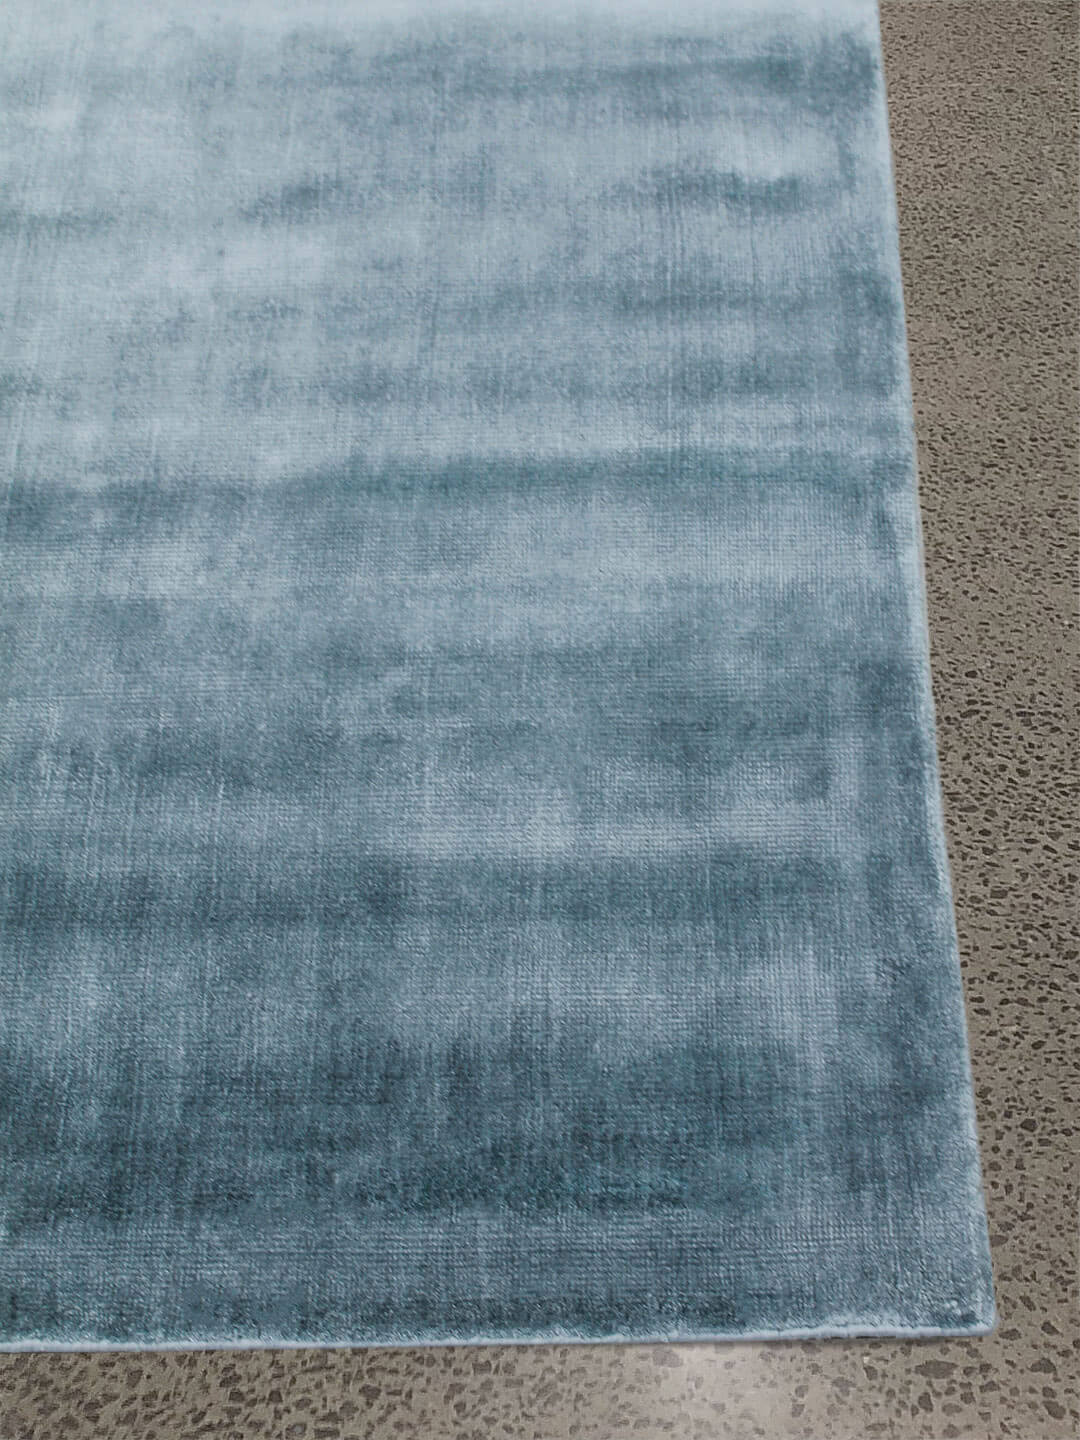 teal-art silk-hand woven-Stans-rugs-glitz-perth